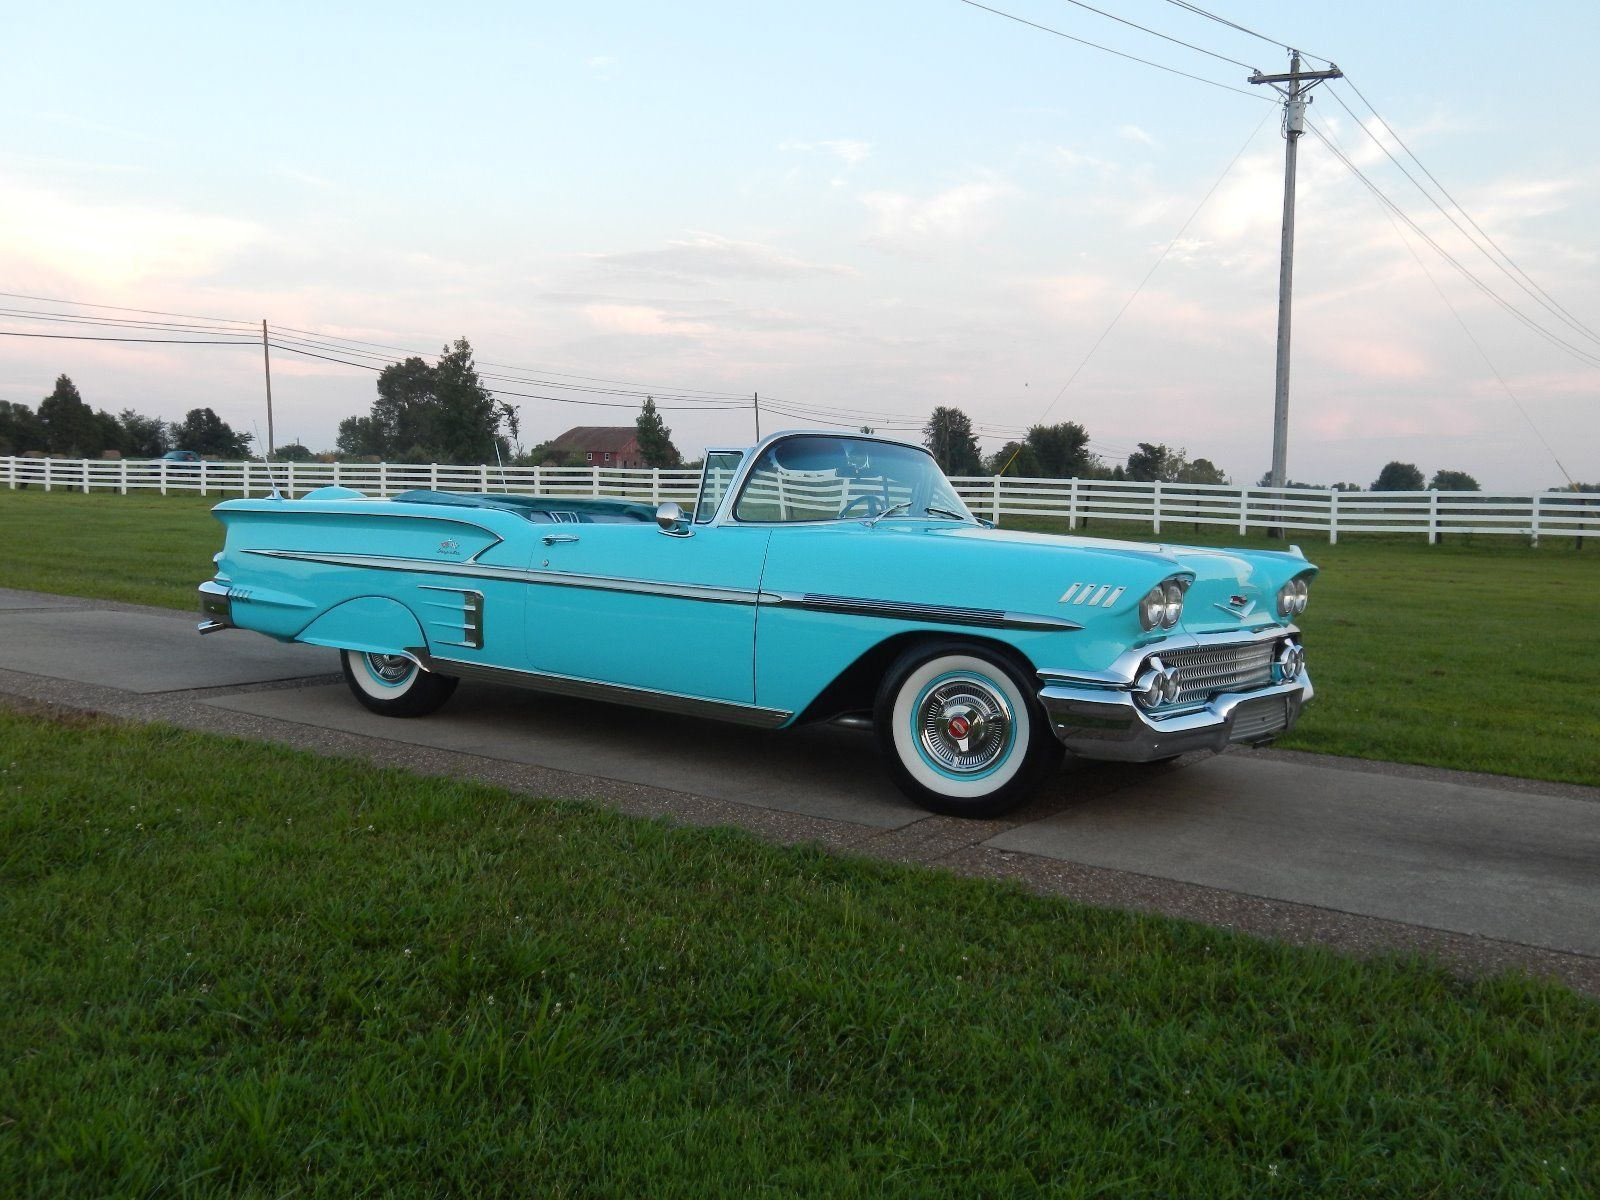 1958 Chevrolet Impala convertible | Old Rides 4 | Pinterest ...